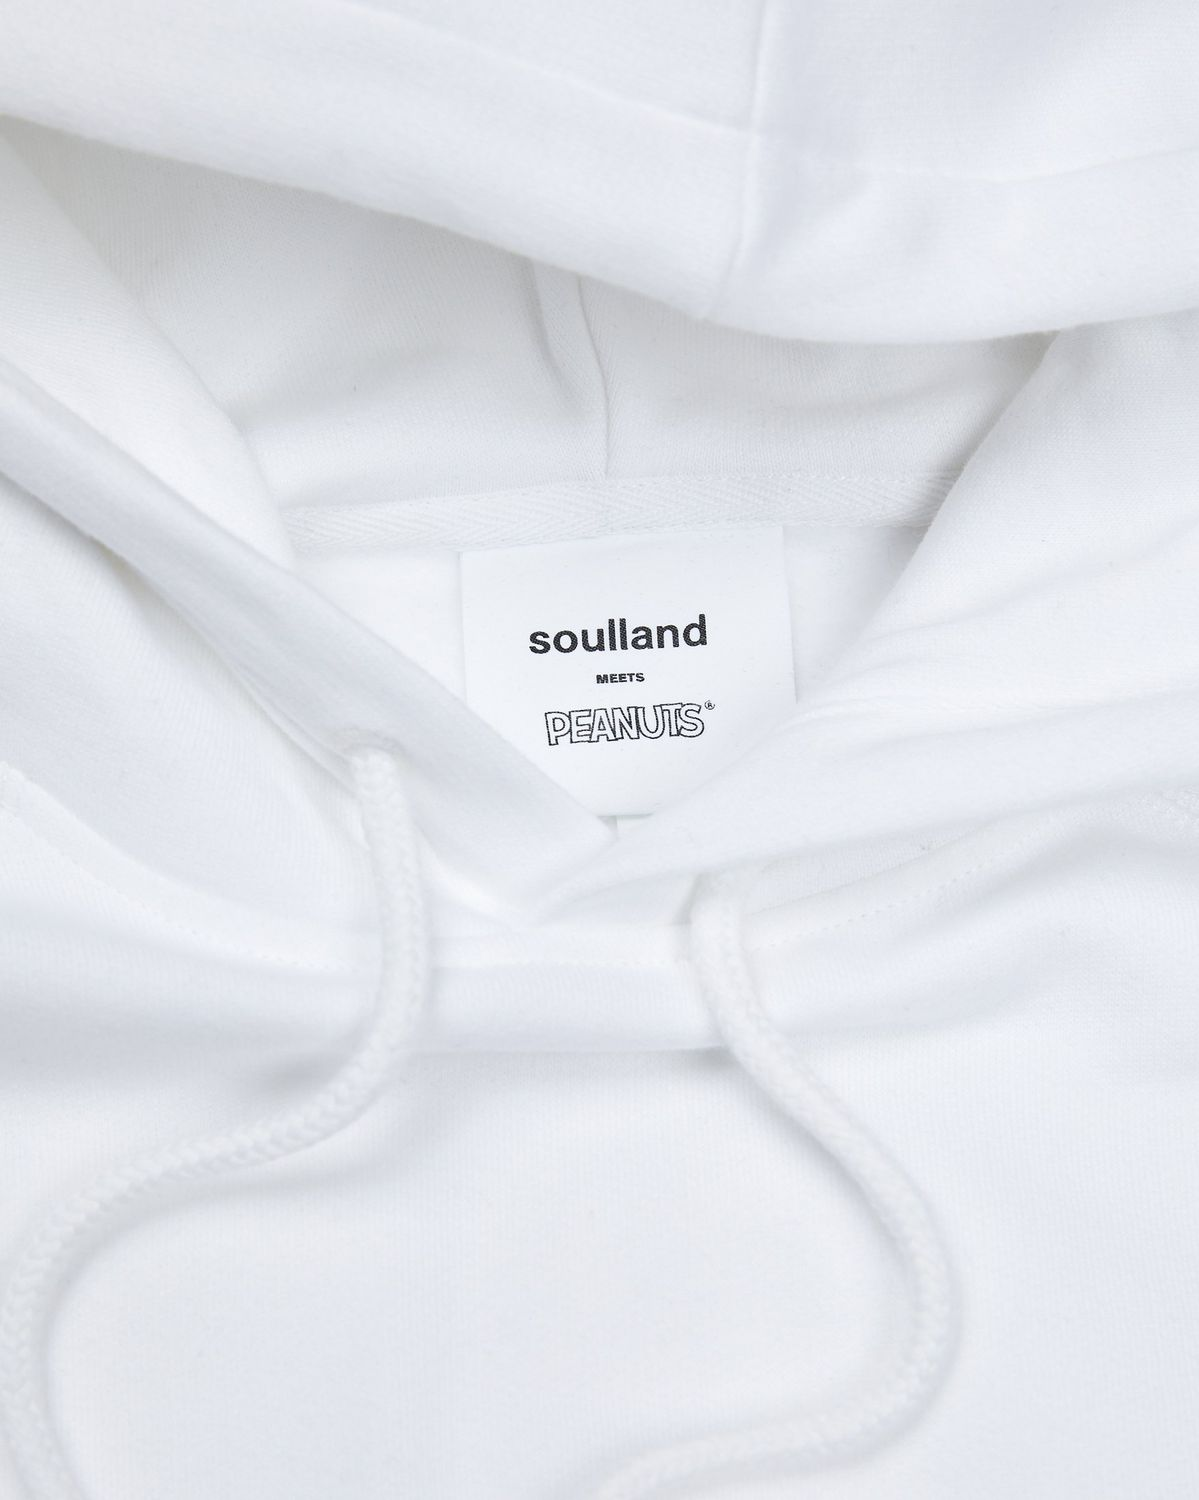 Colette Mon Amour x Soulland —  Snoopy Bed White Hoodie - Image 3